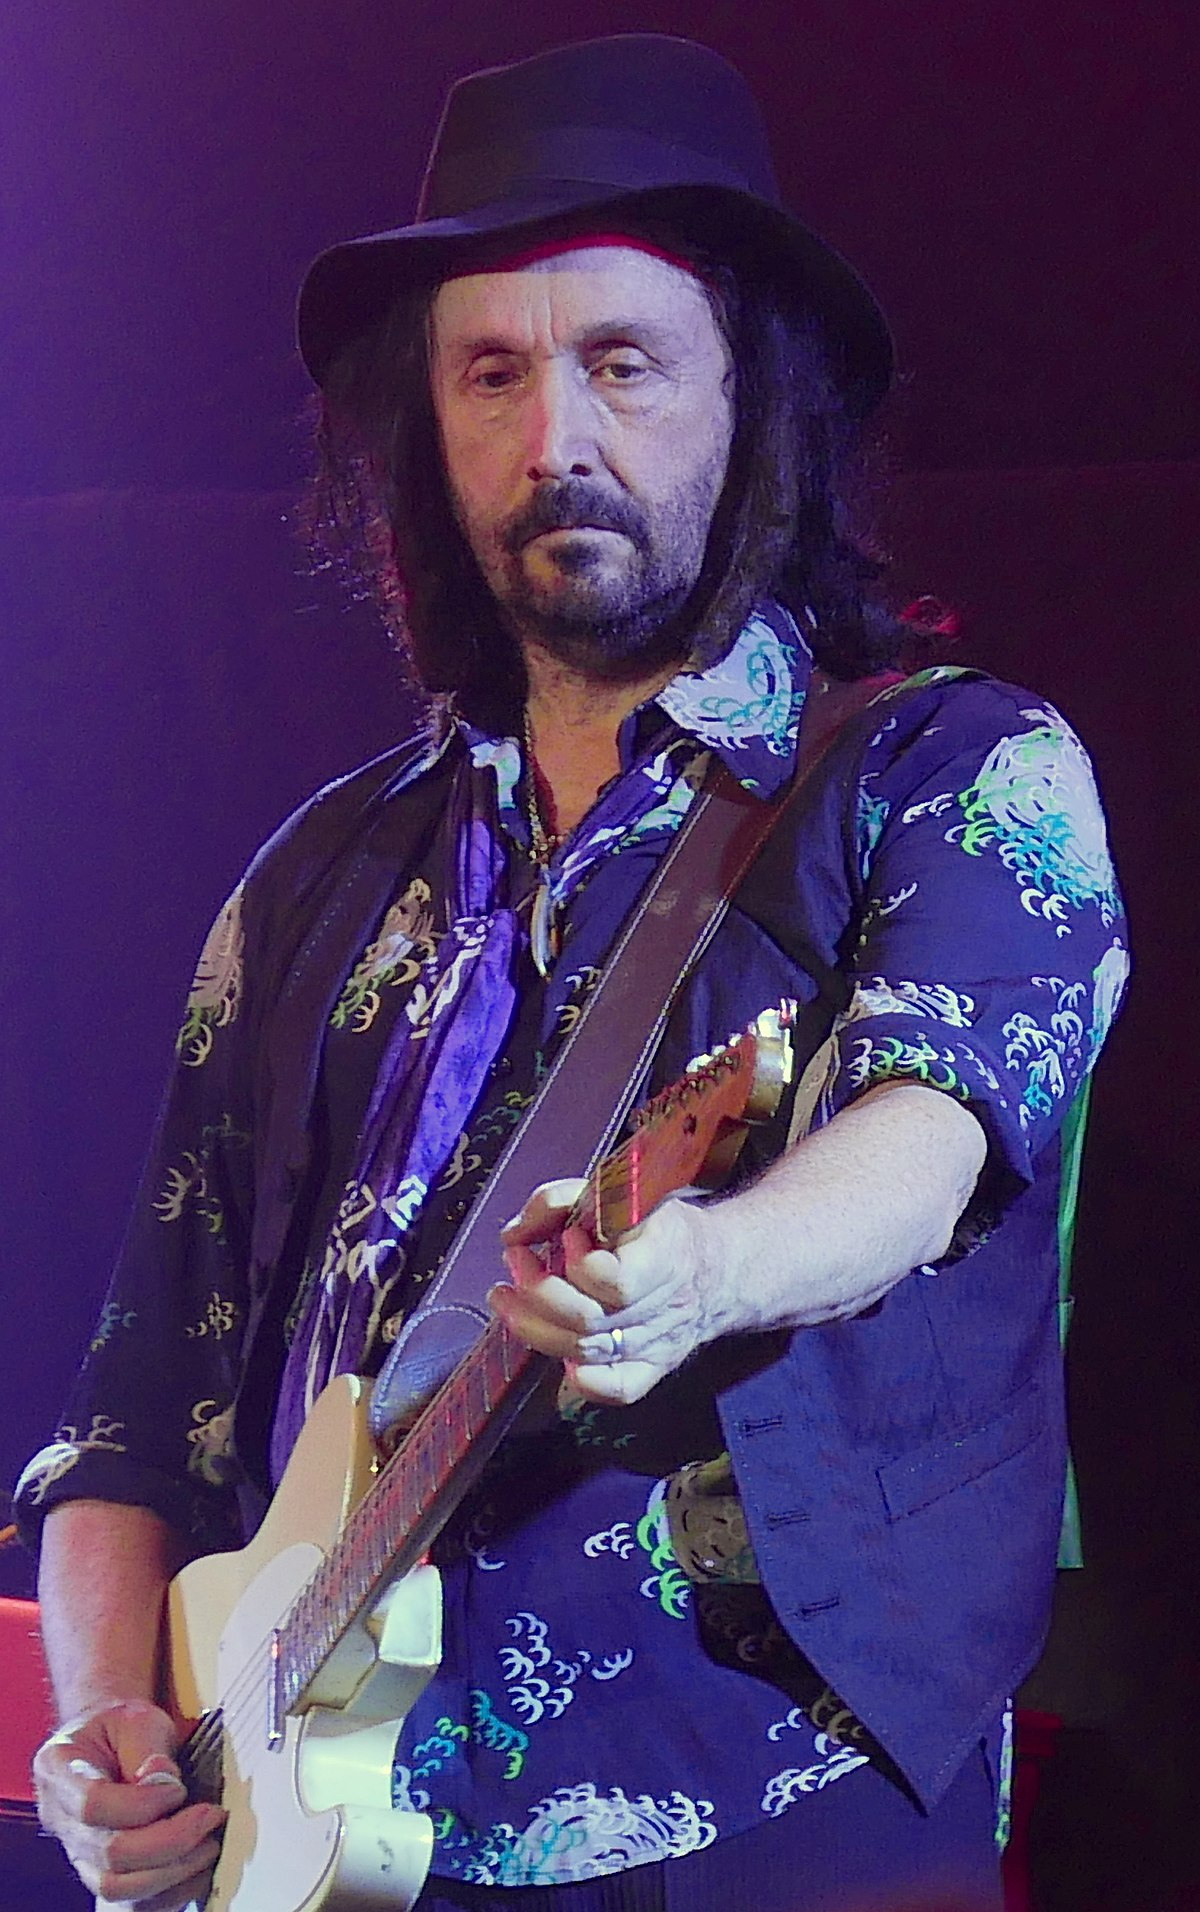 Mike Campbell Musician Wikipedia